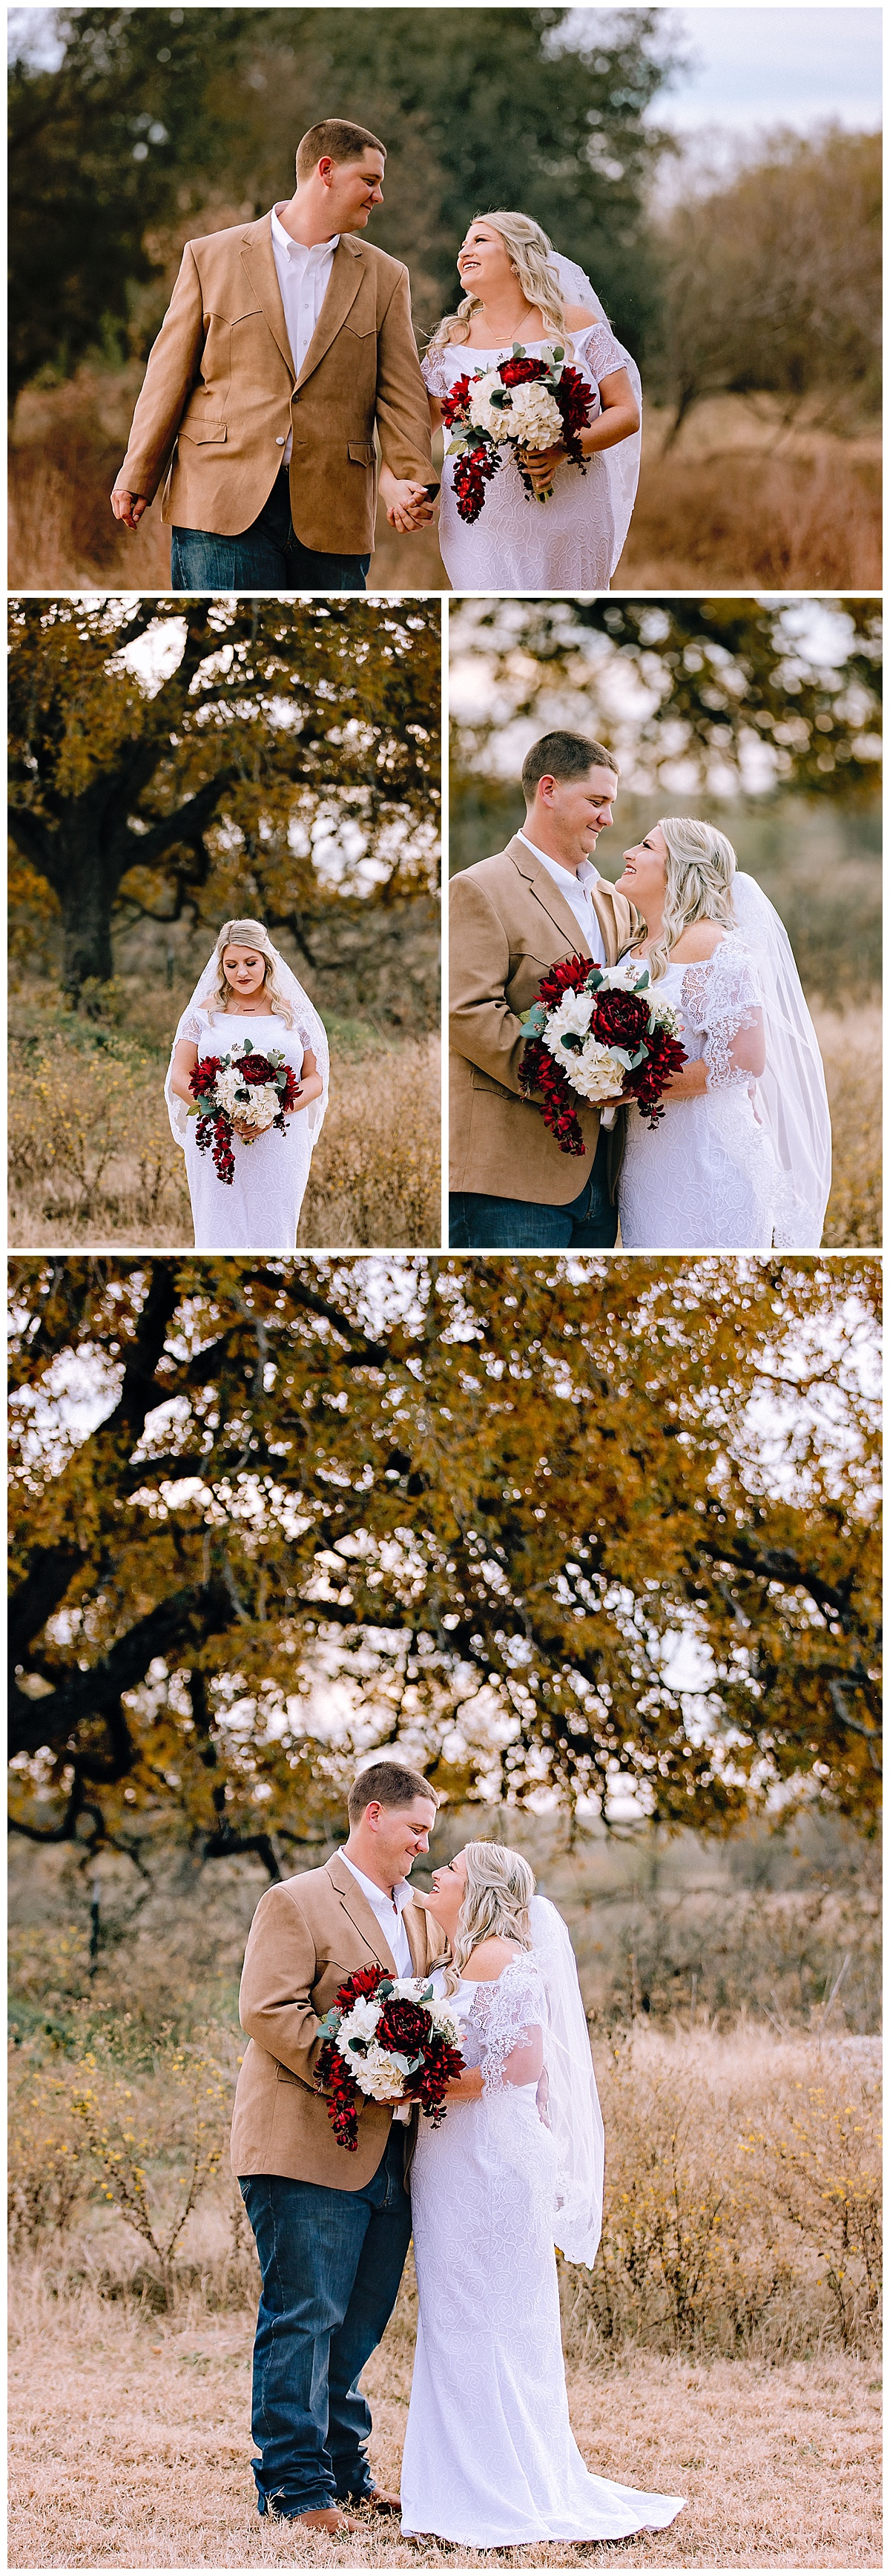 Wedding-Photographer-LaVernia-Texas-Ceremony-Under-the-Trees-Bride-Groom-Fall-McDonald-Carly-Barton-Photography_0014.jpg